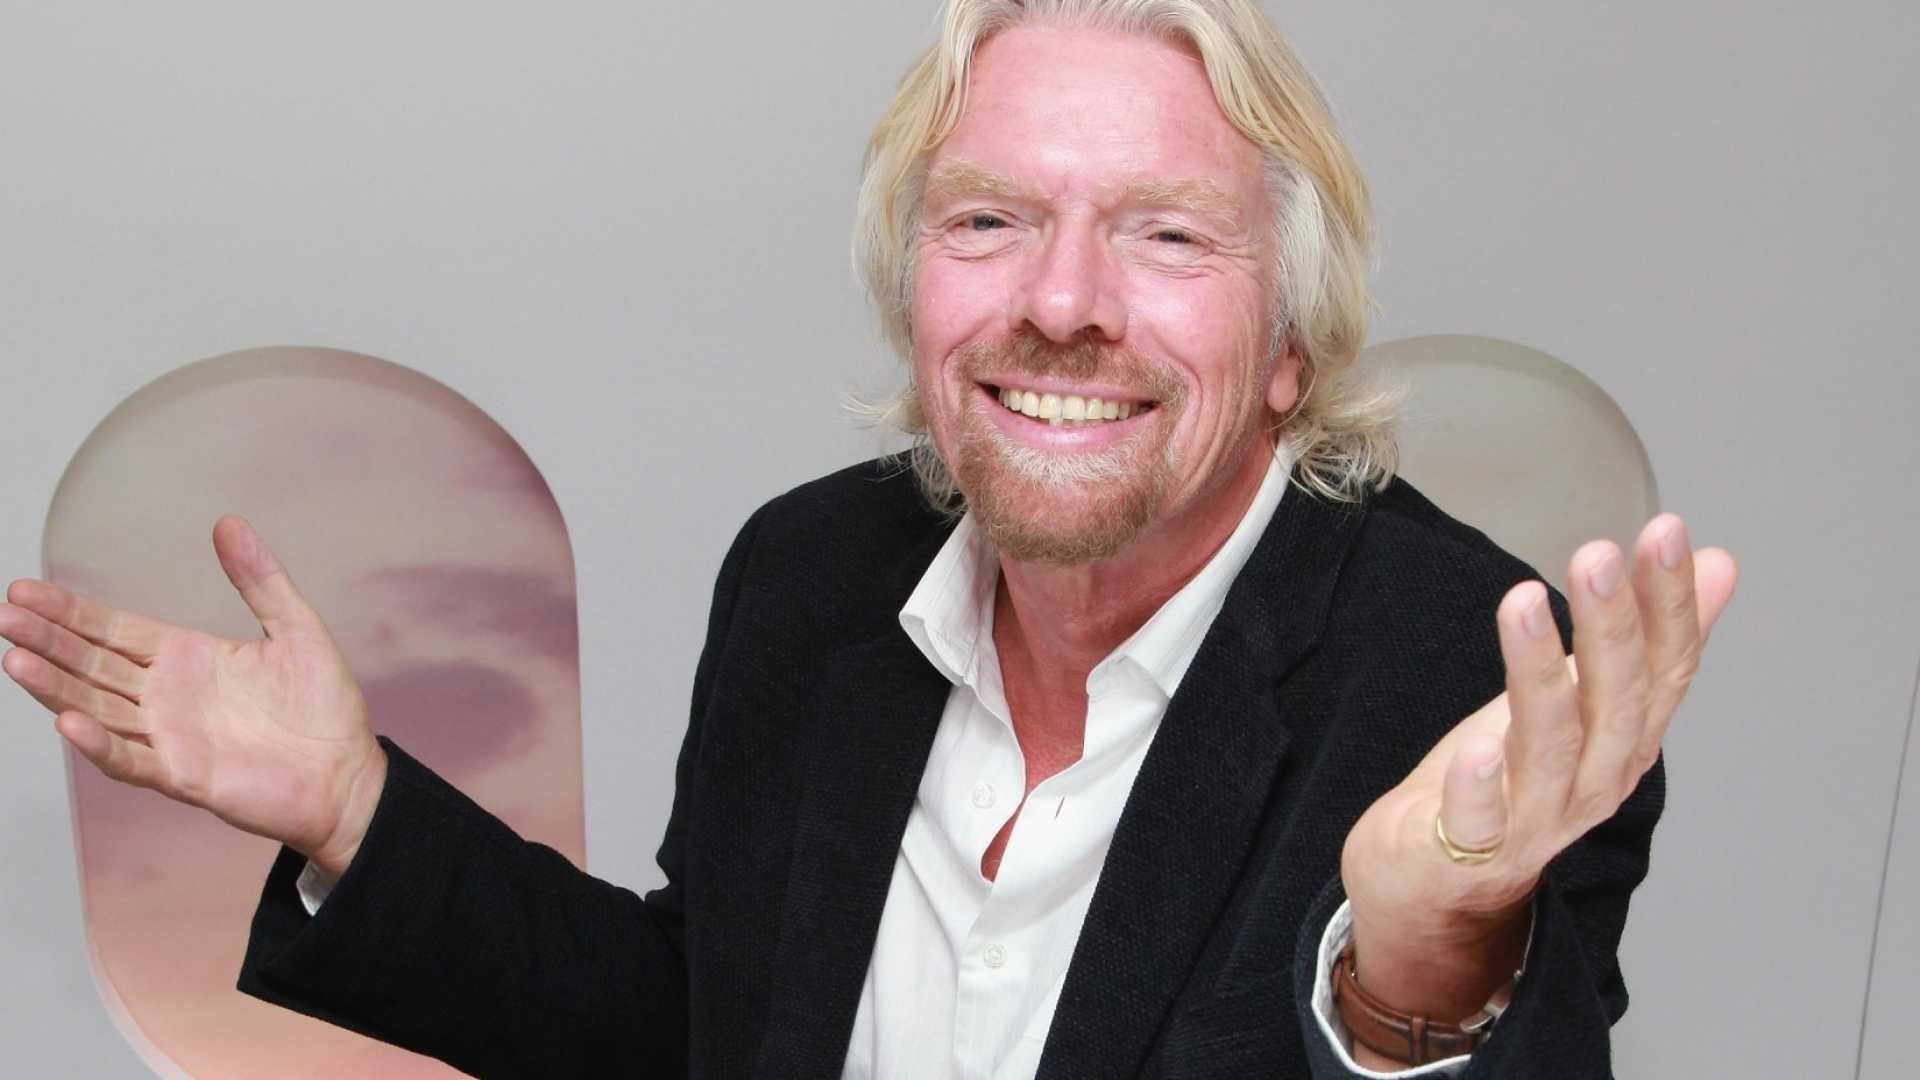 Virgin Group founder Sir Richard Branson has some advice for work -- and life.